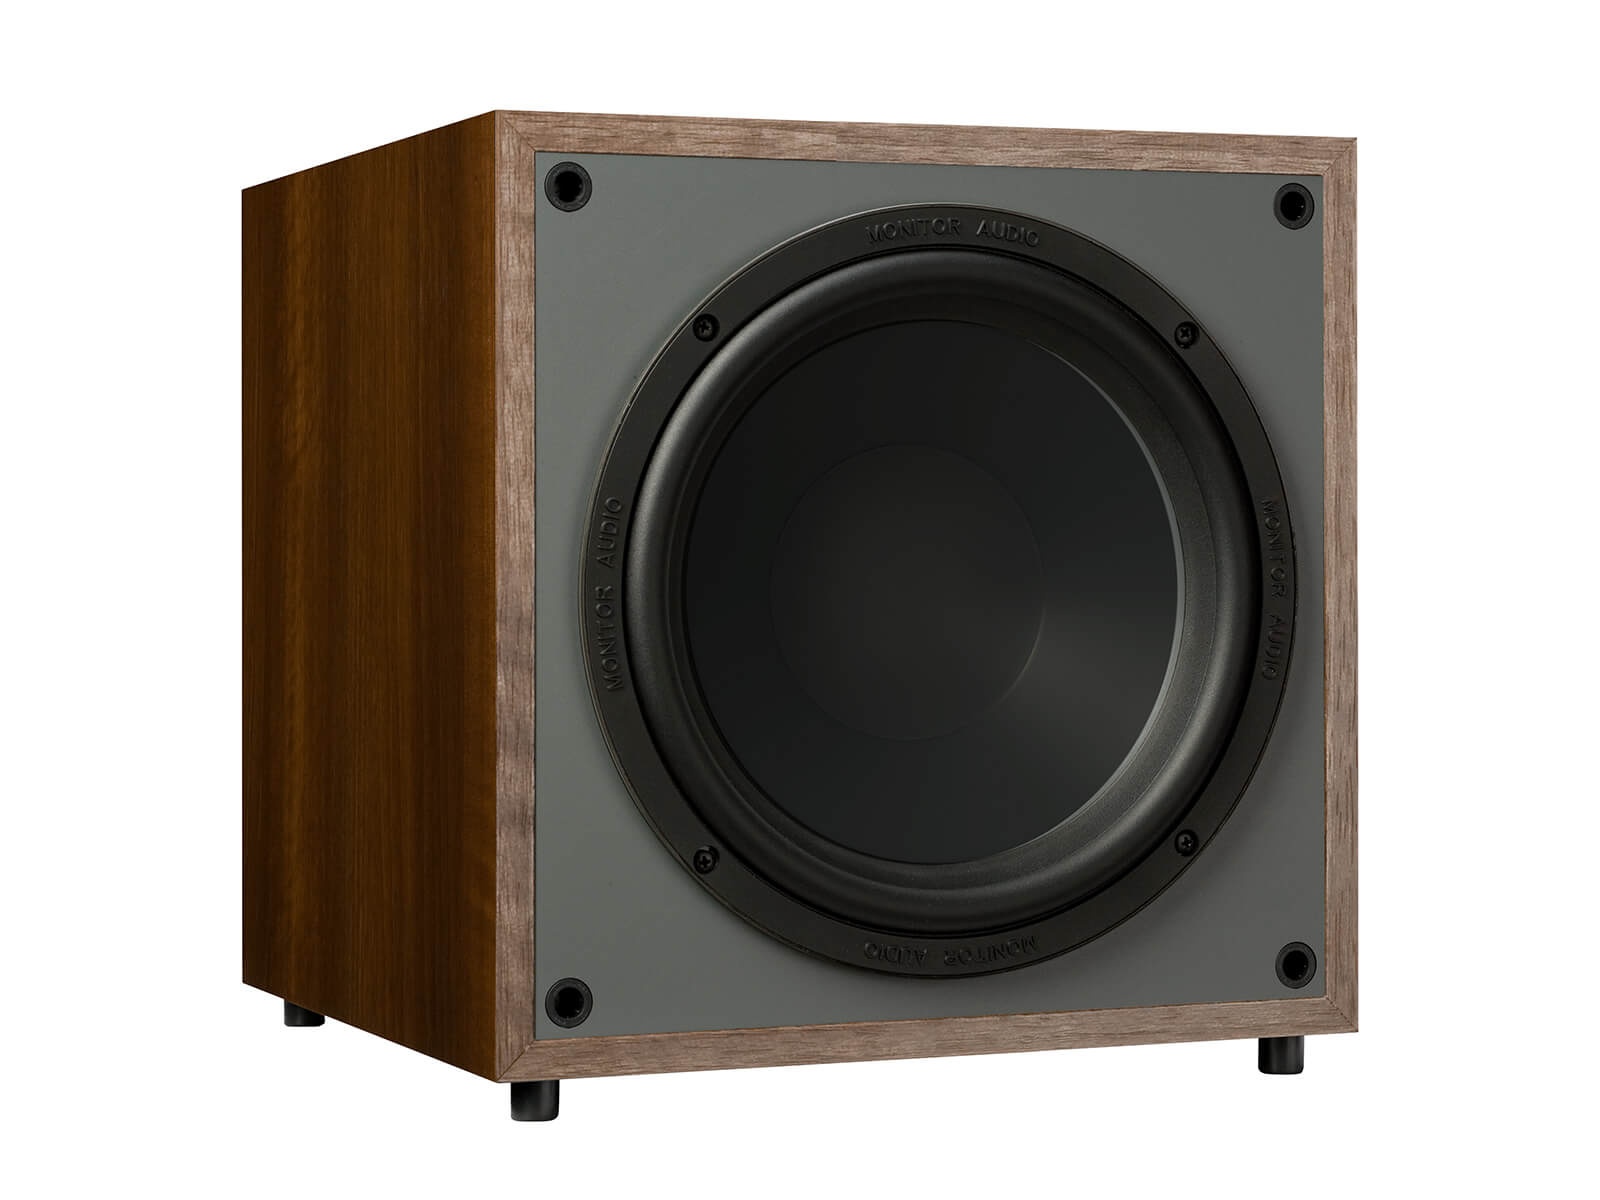 Monitor MRW-10, grille-less subwoofer, with a walnut vinyl finish.